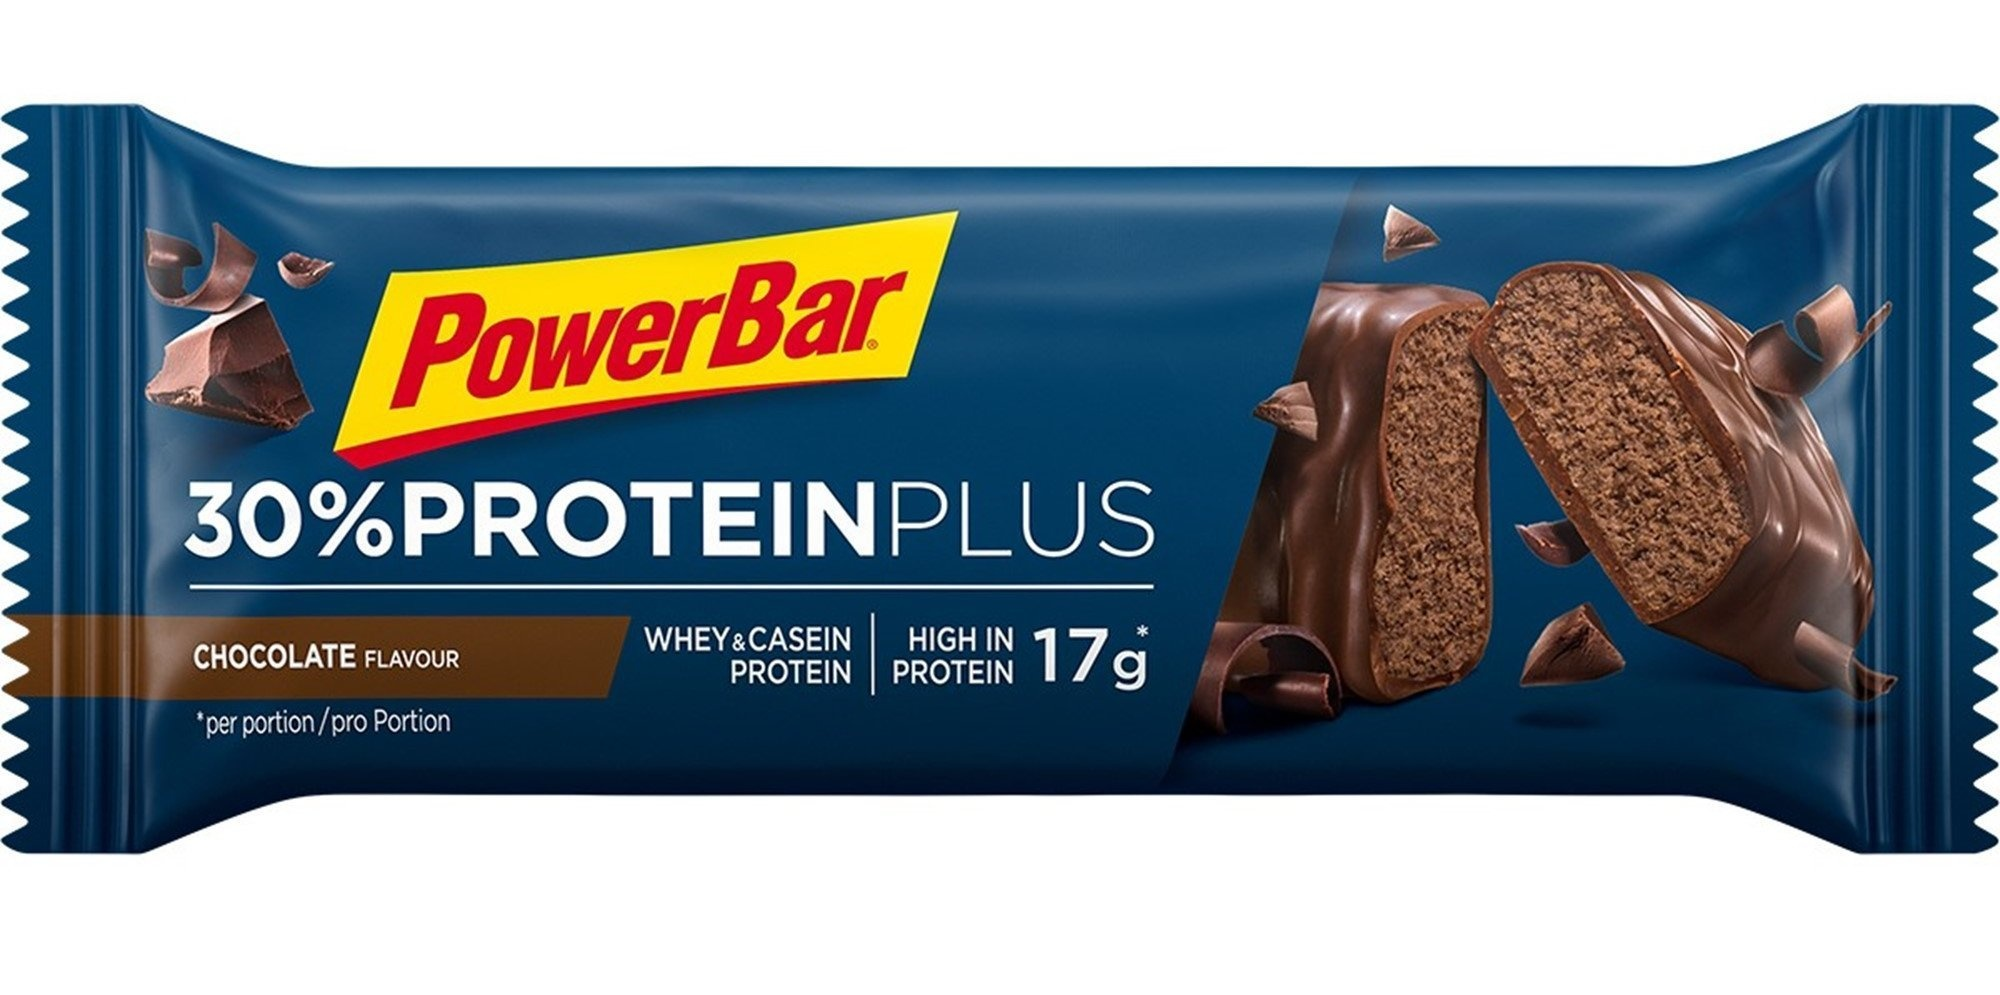 PowerBar 30% Protein Plus Chocolate